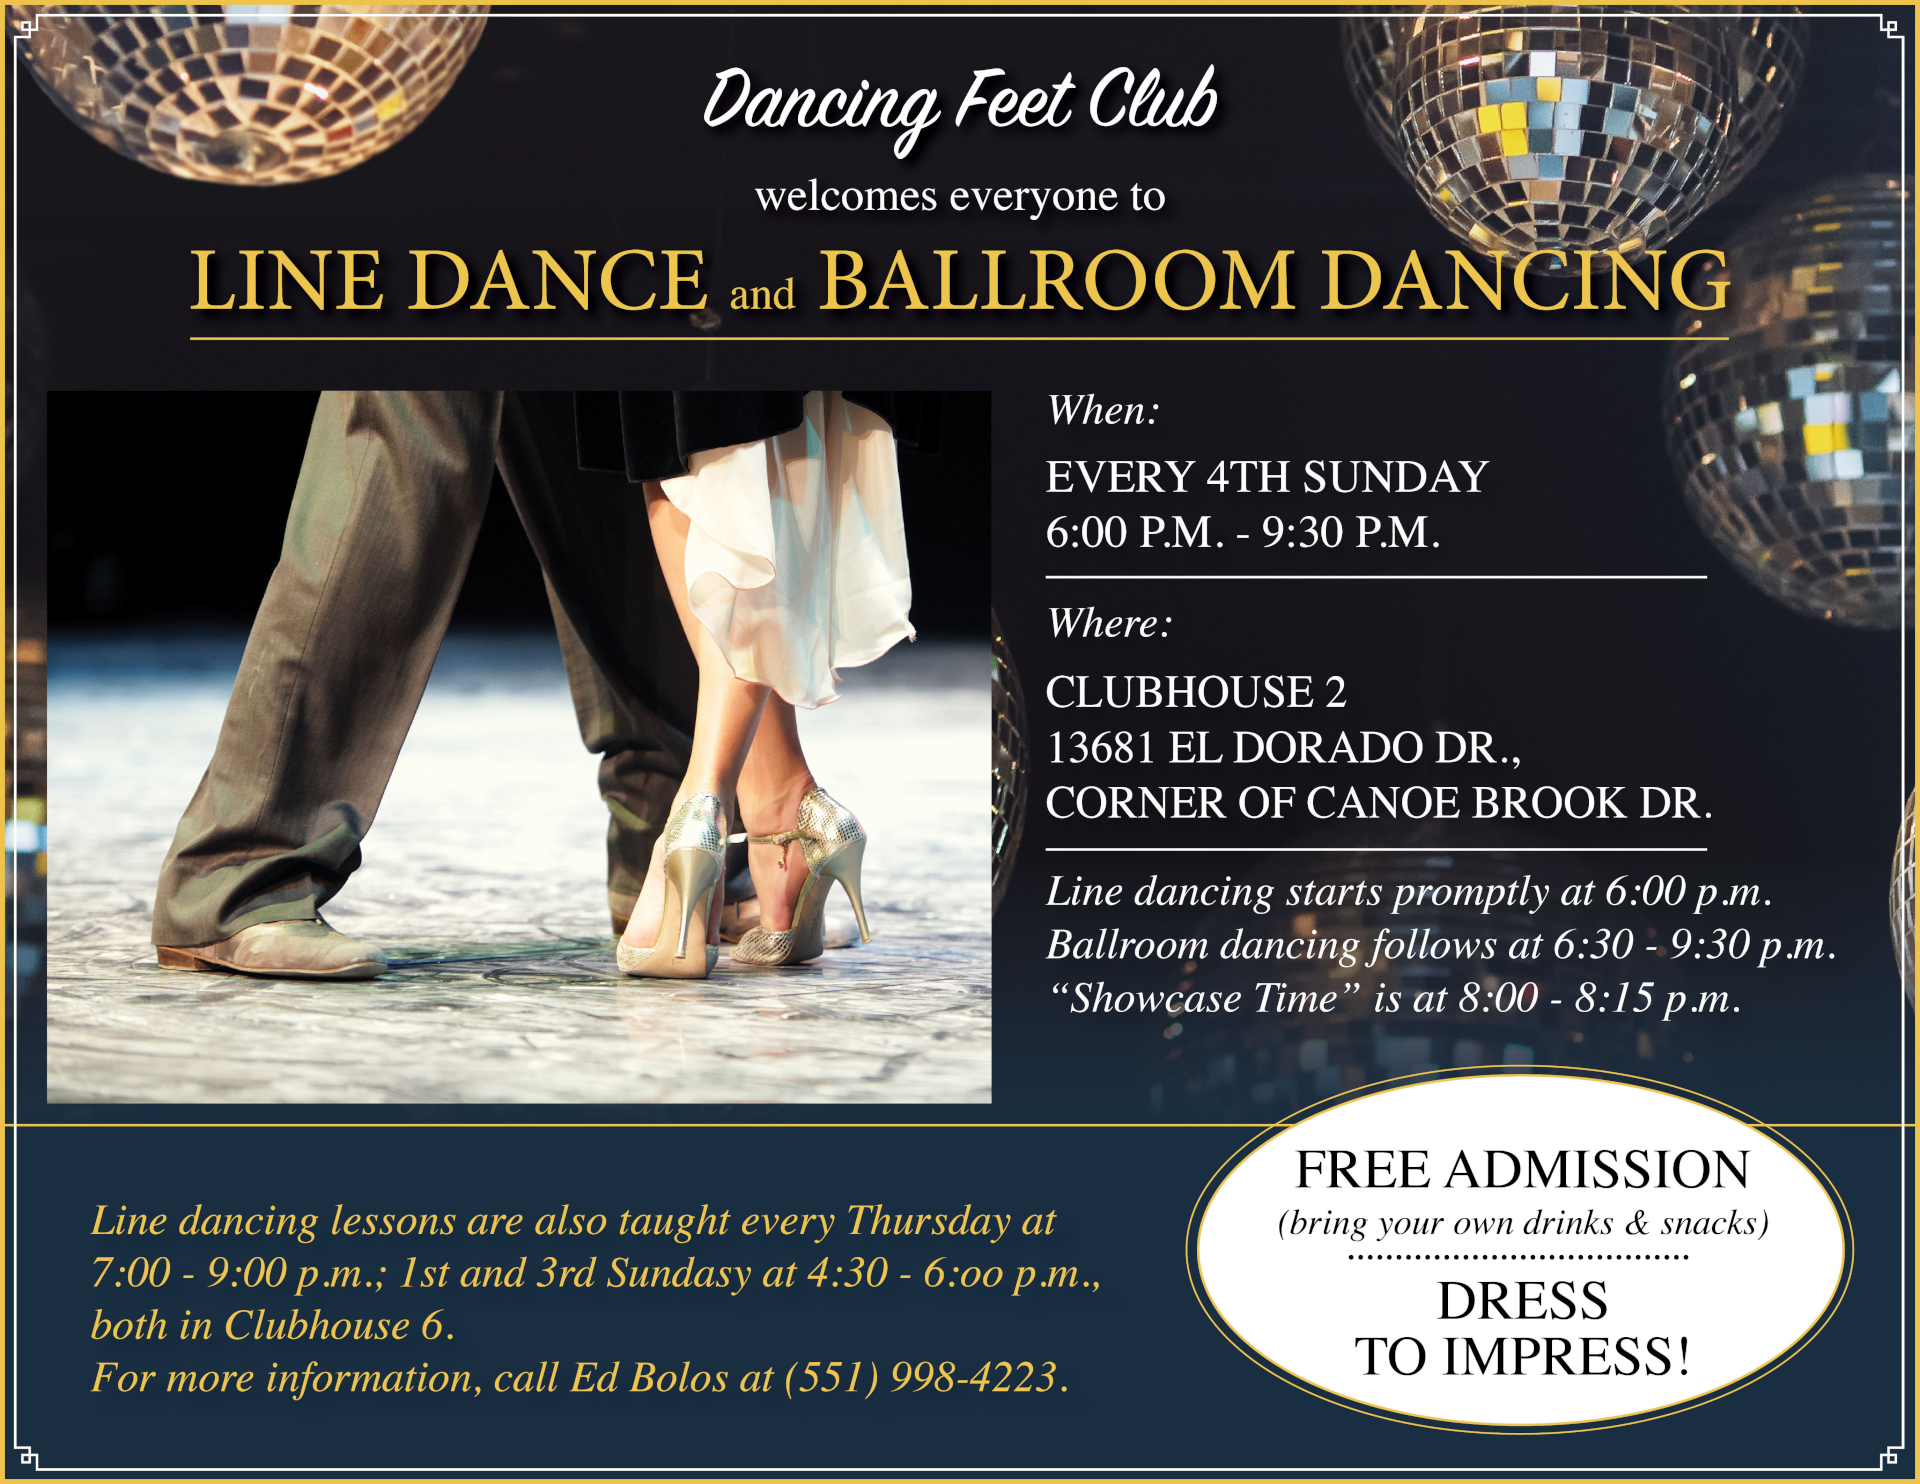 Happy feet club flyer